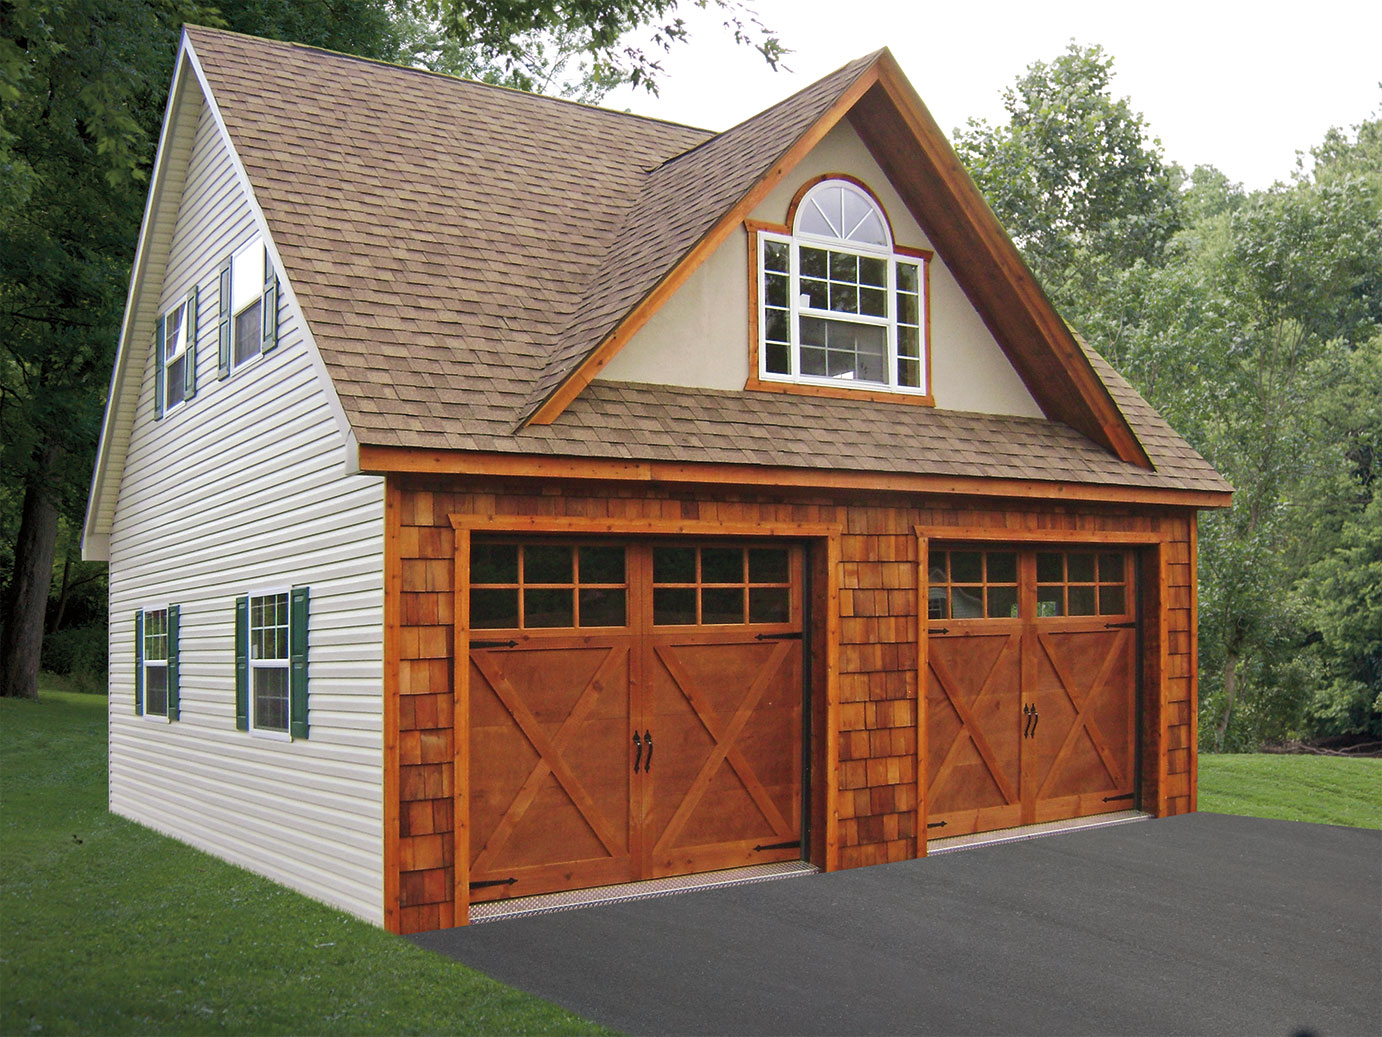 Built On-Site Custom Amish Garages in Oneonta, NY | Amish Barn Company